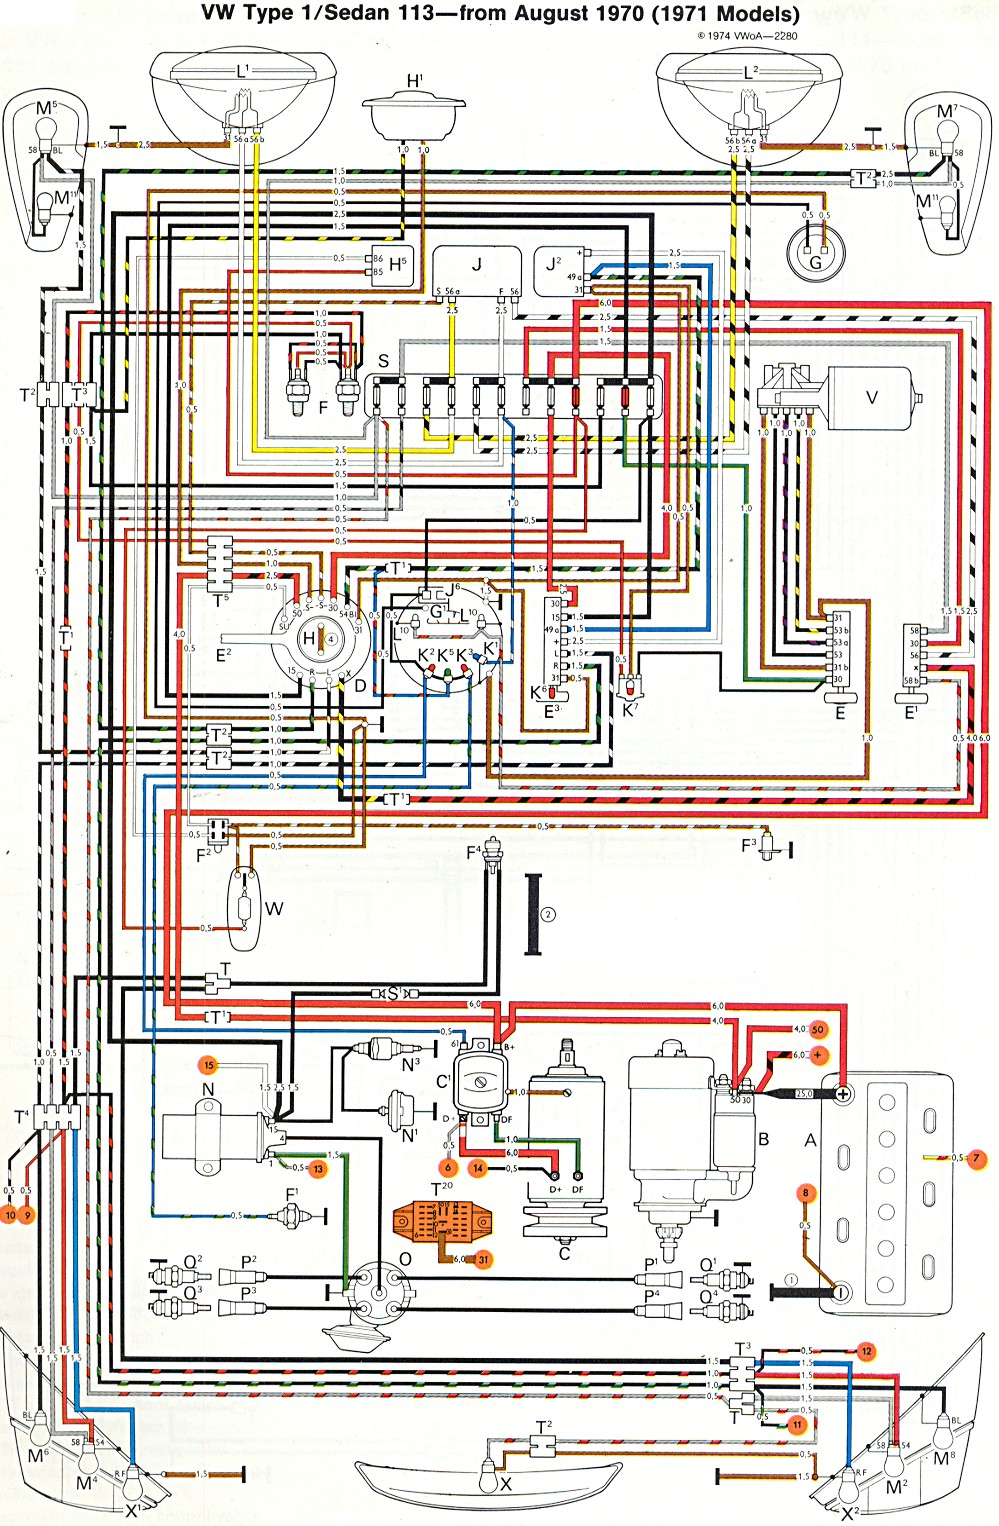 1967 vw radio wiring diagram wiring diagram 1967 VW Fuse Box car stereo wiring harness for 2003 volkswagen pat wiring diagramscar stereo wiring harness for 2003 volkswagen